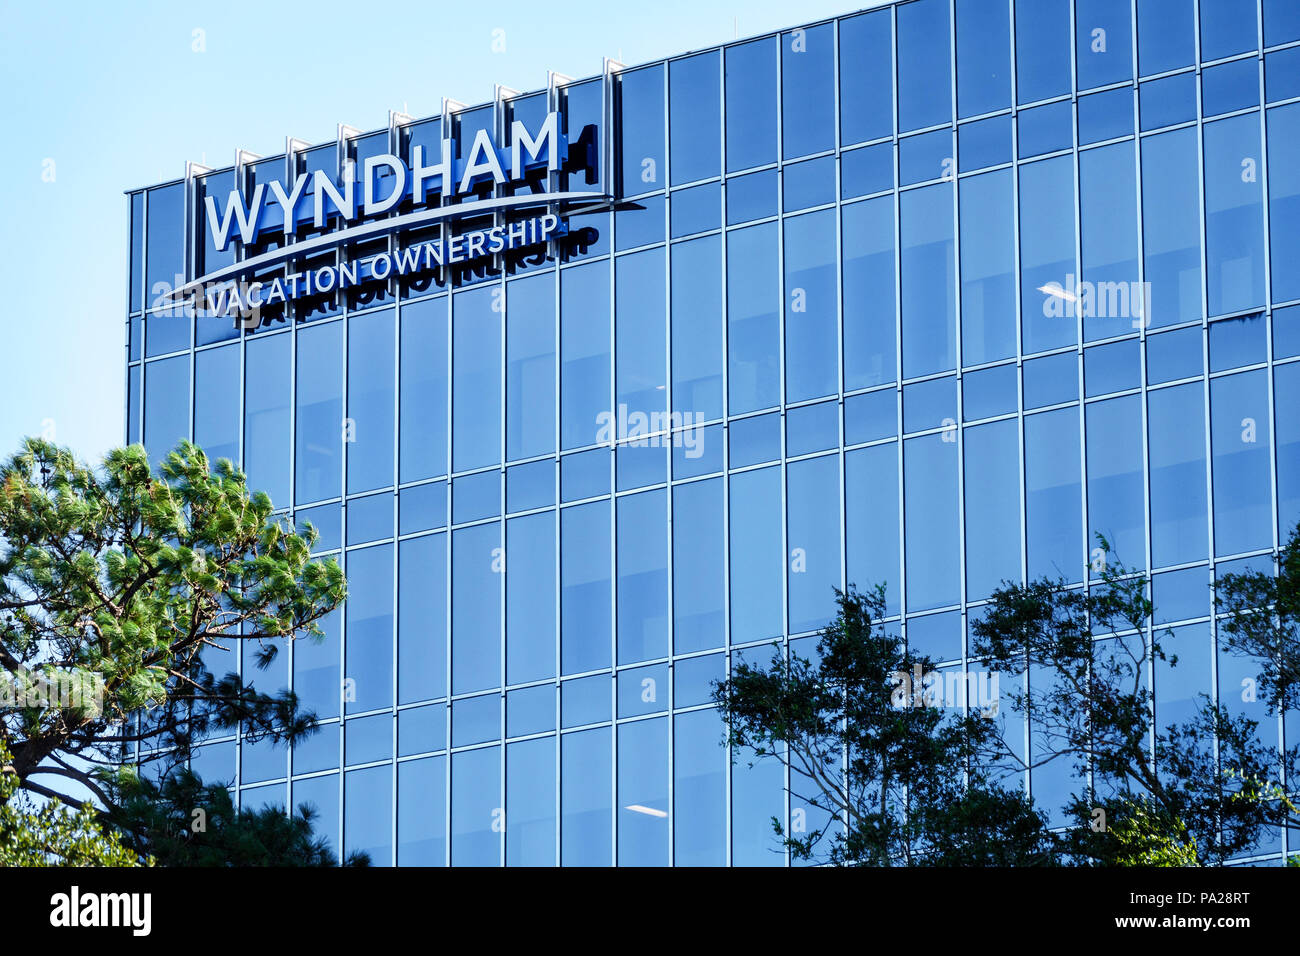 Orlando Florida Wyndham Vacation Ownership corporate headquarters timeshare agency building exterior sign - Stock Image